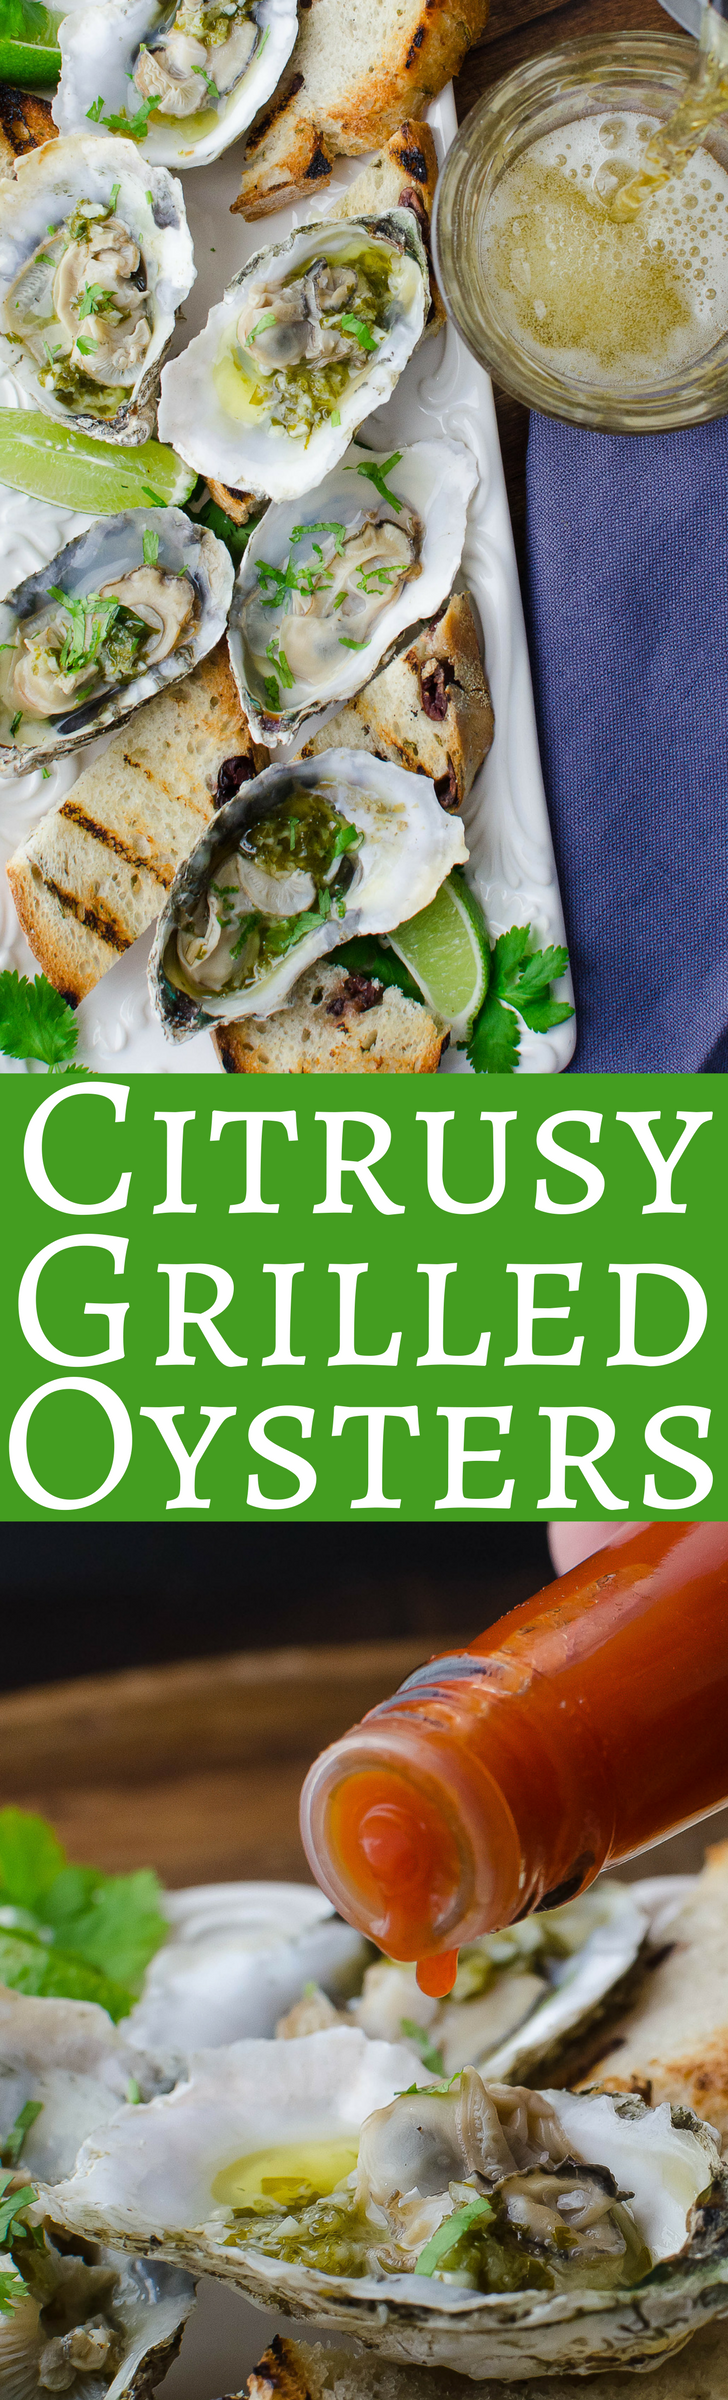 Tender, briny oysters grilled in their shells with a garlicky butter lime sauce and a dash of heat!  Easy to make - and so freakin' good!